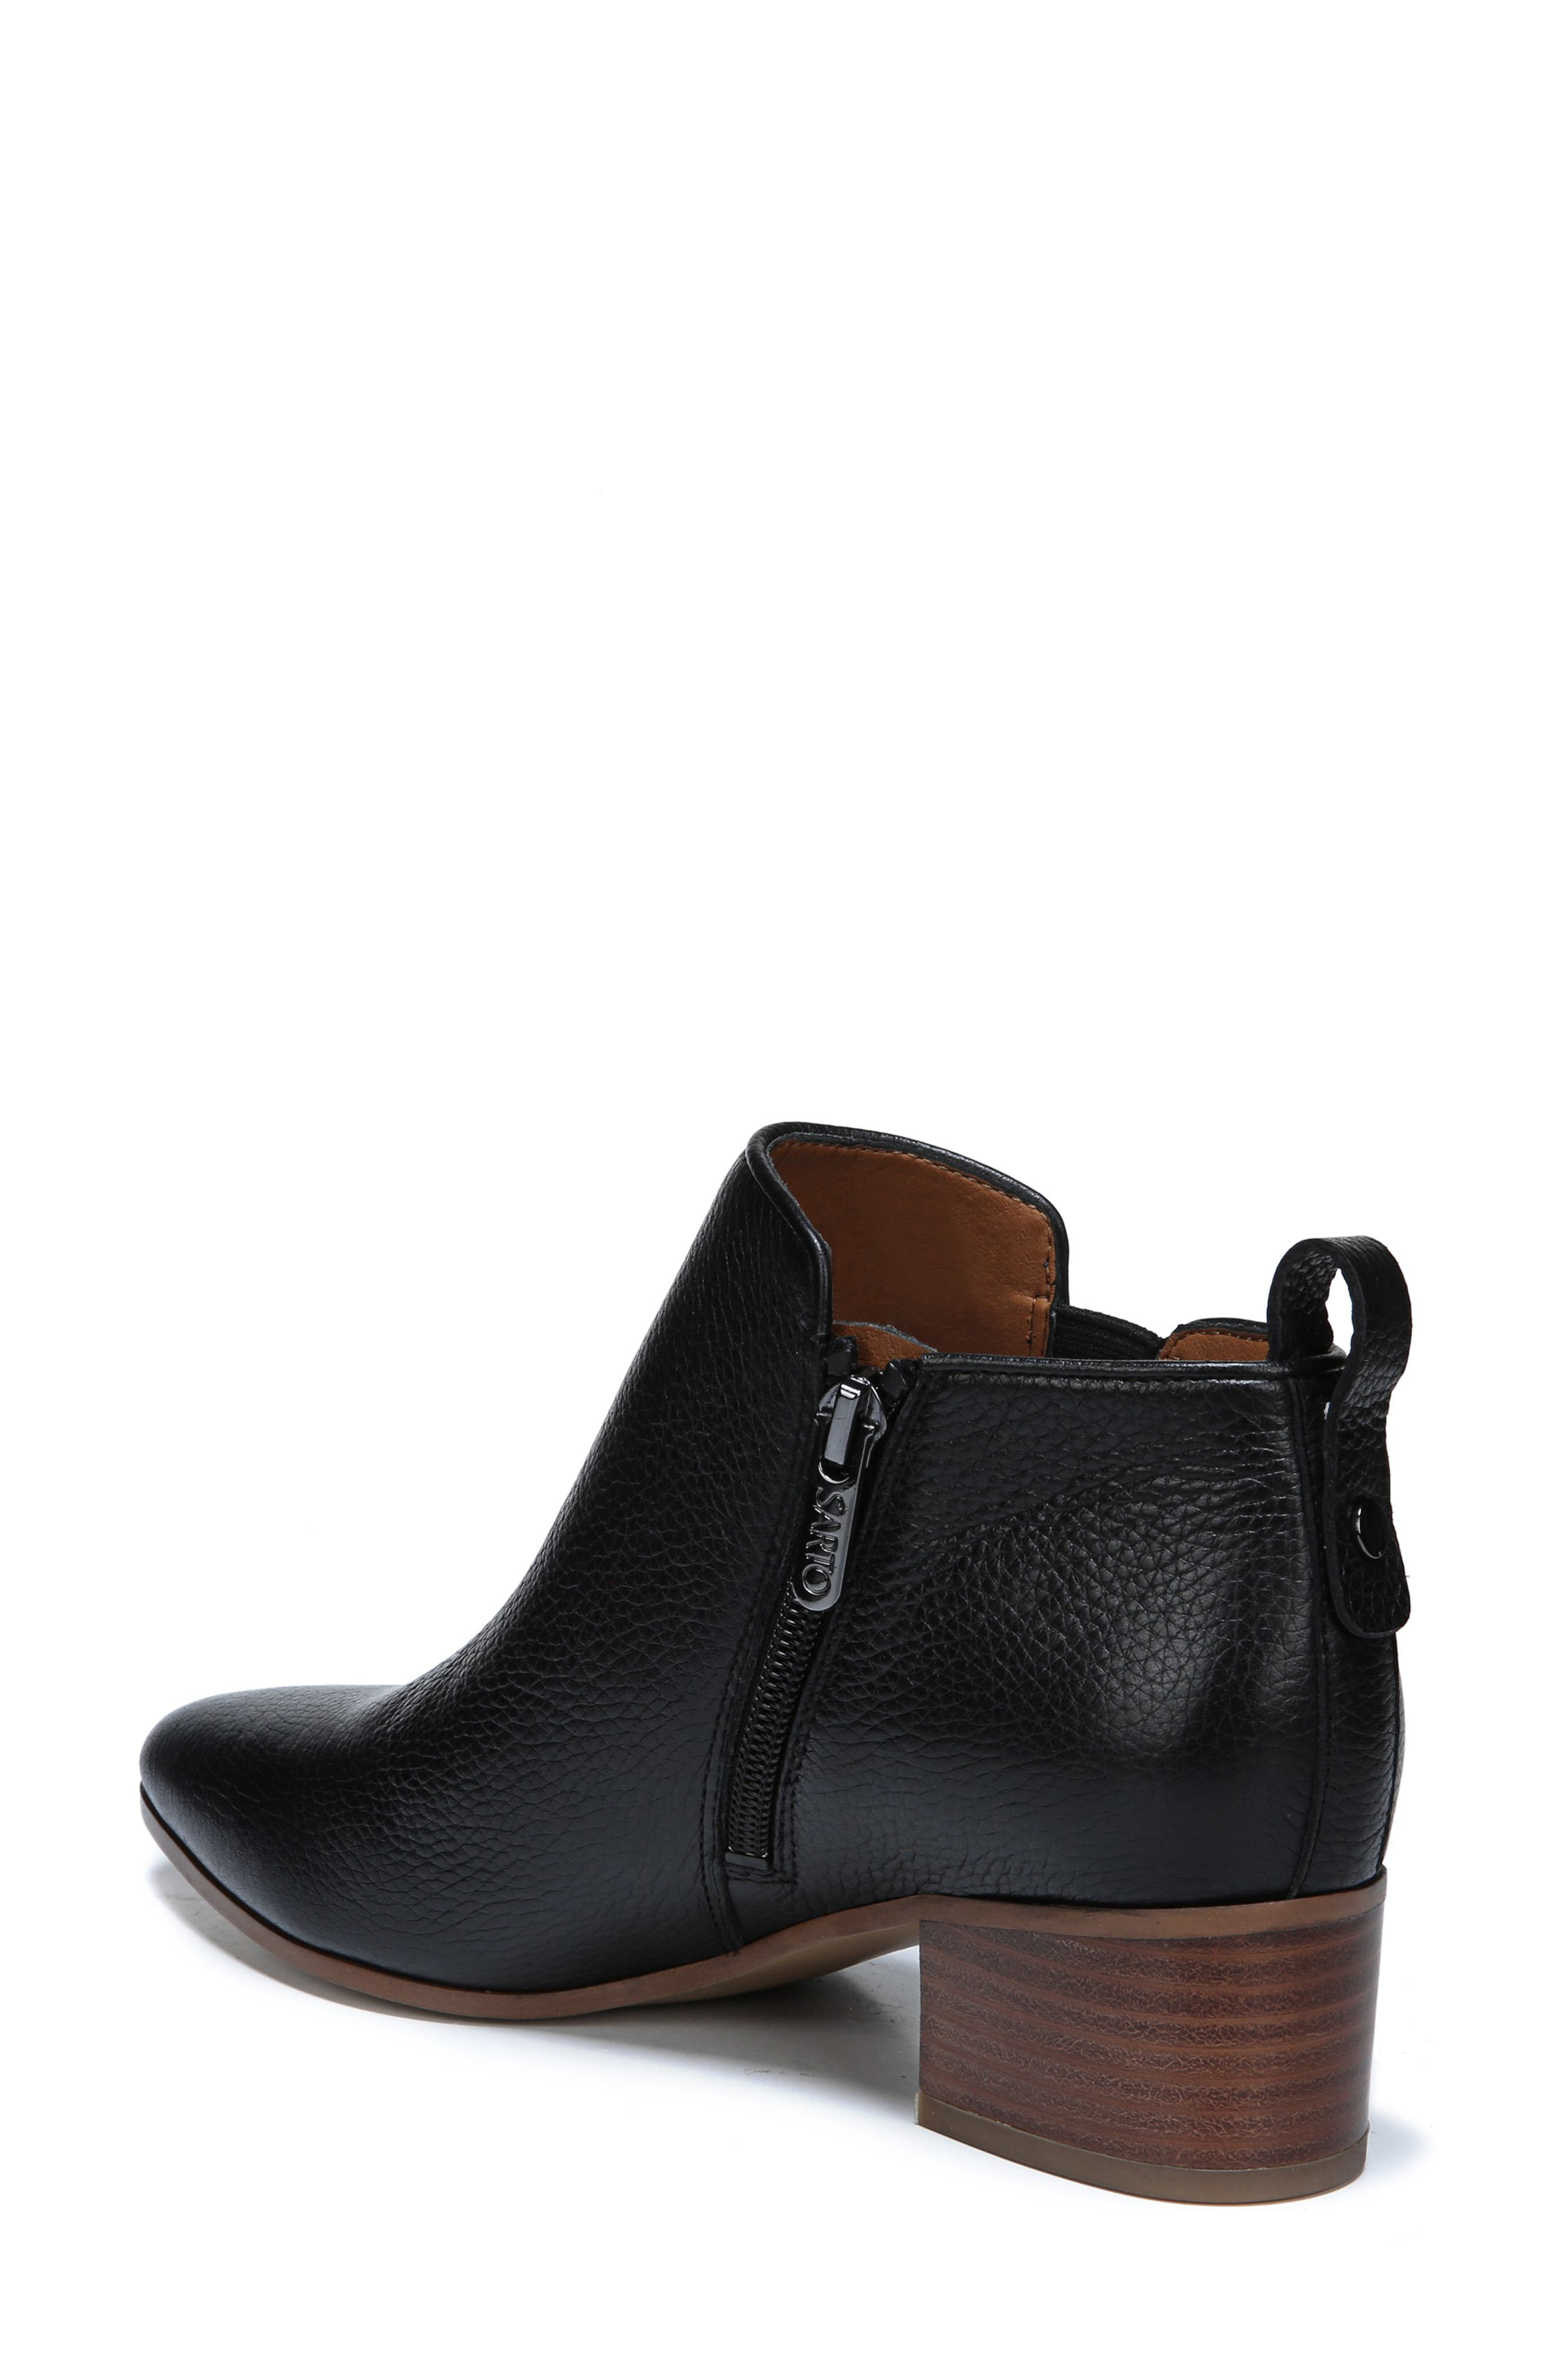 Jollie Bootie,                             Alternate thumbnail 2, color,                             BLACK LEATHER